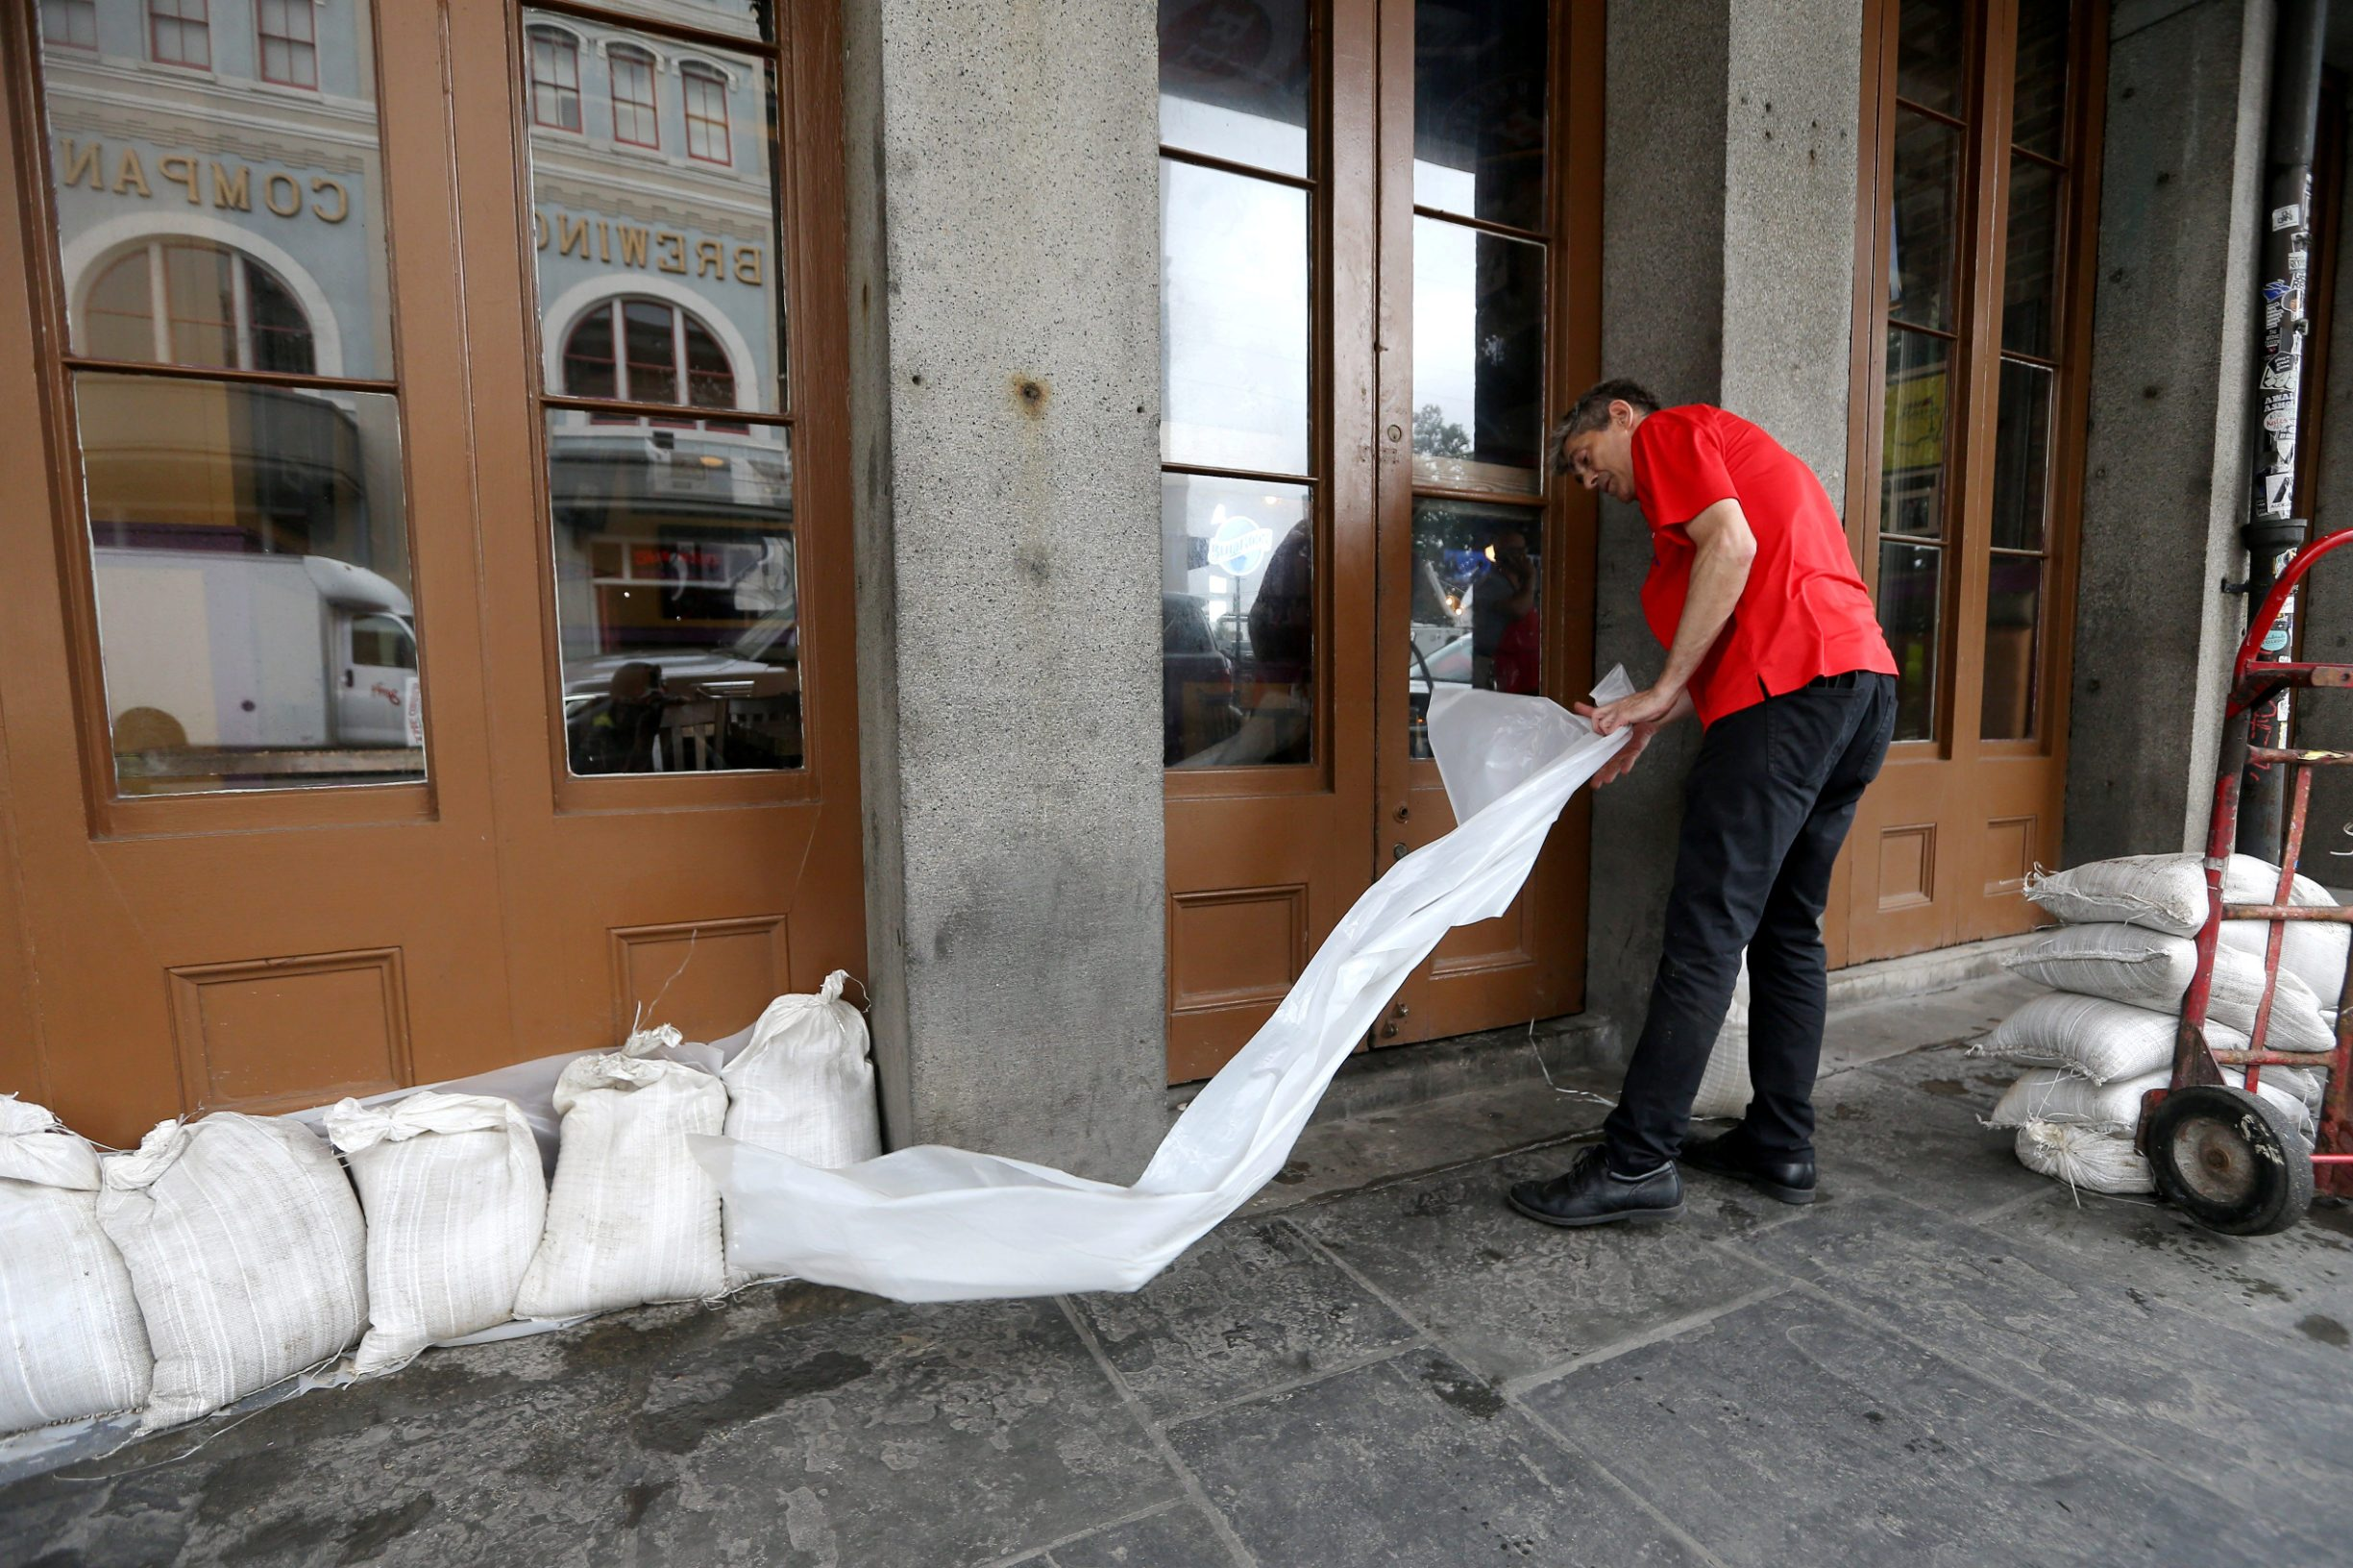 An employee places sandbags in front of a business in the French Quarter as Tropical Storm Barry approaches land in New Orleans, Louisiana, U.S. July 12, 2019.  REUTERS/Jonathan Bachman